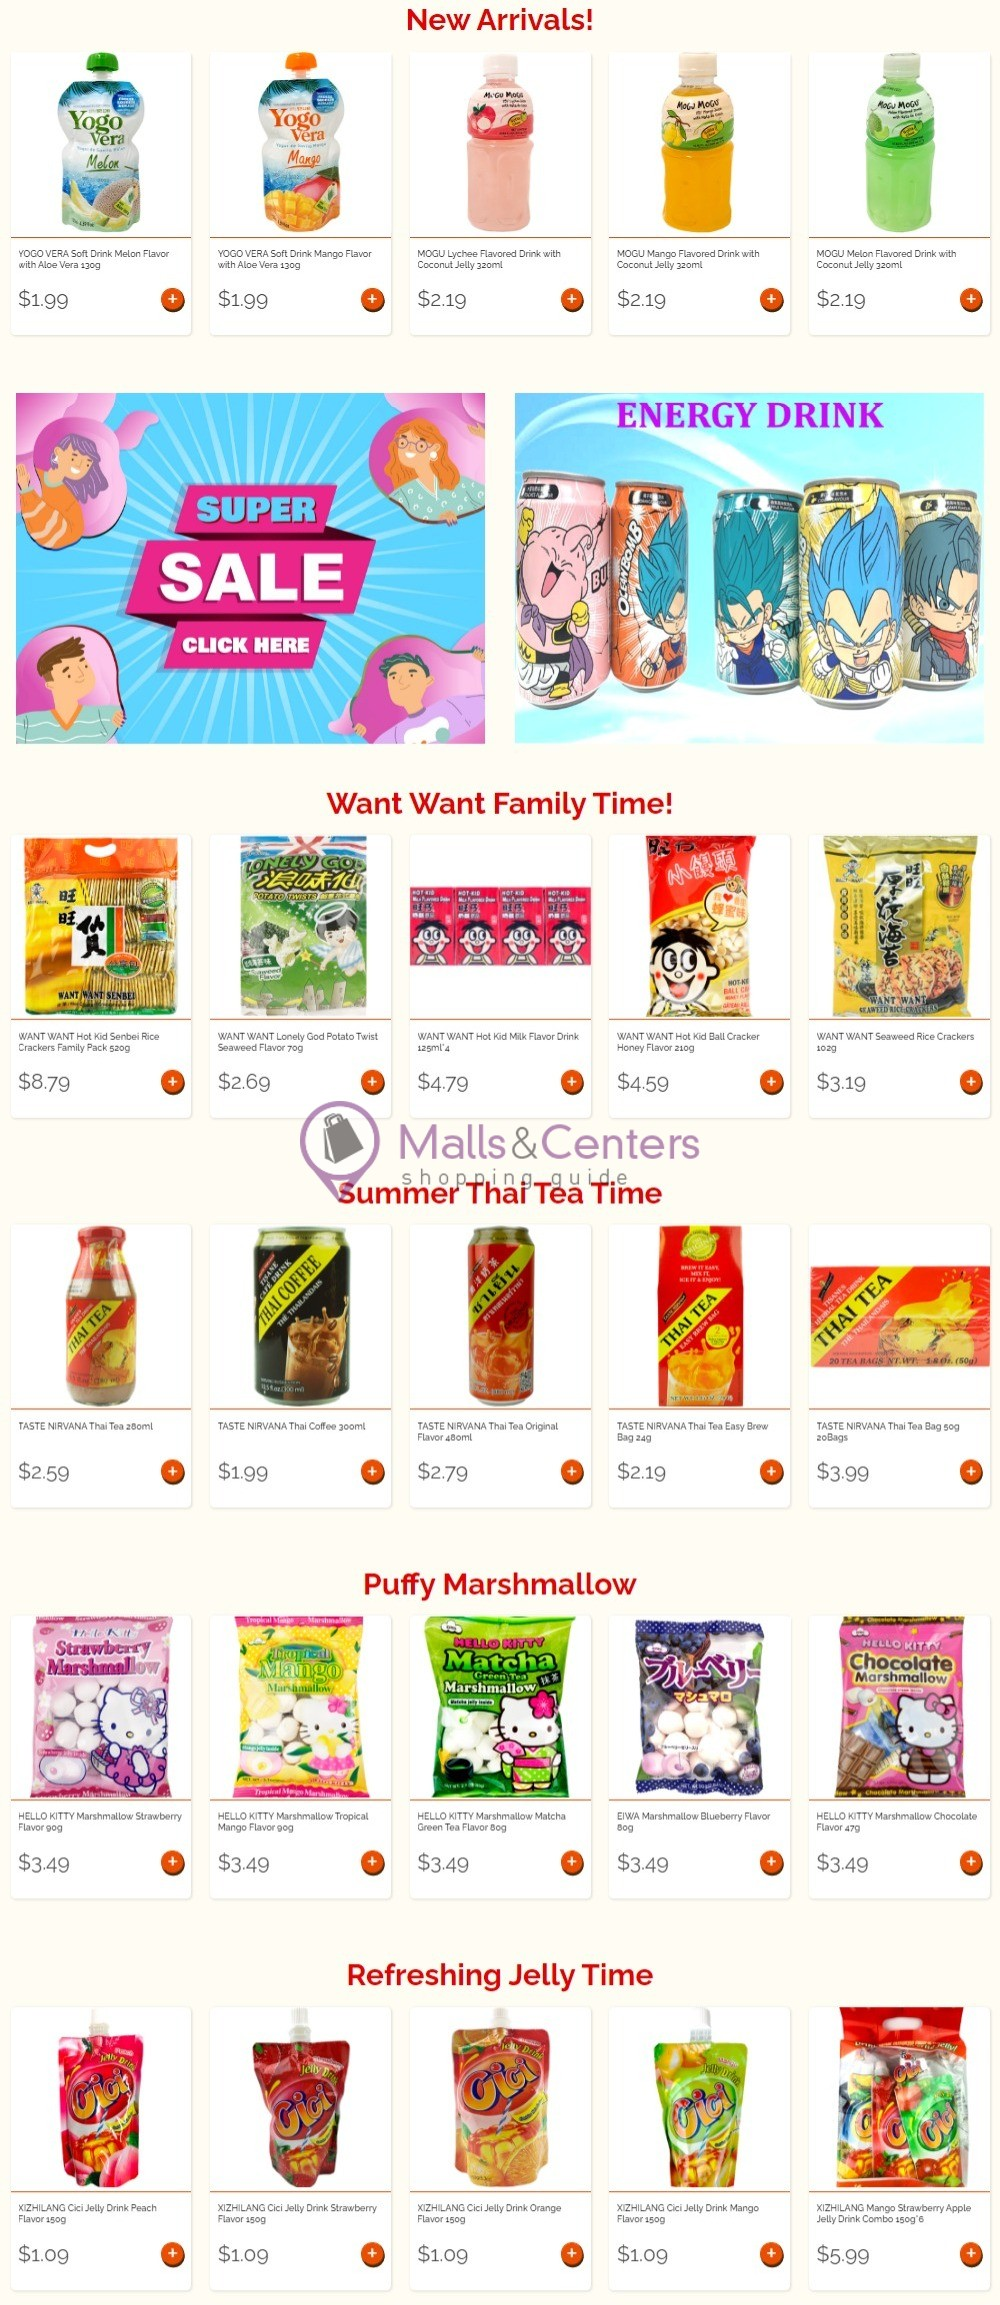 weekly ads Asian Food Grocer - page 1 - mallscenters.com